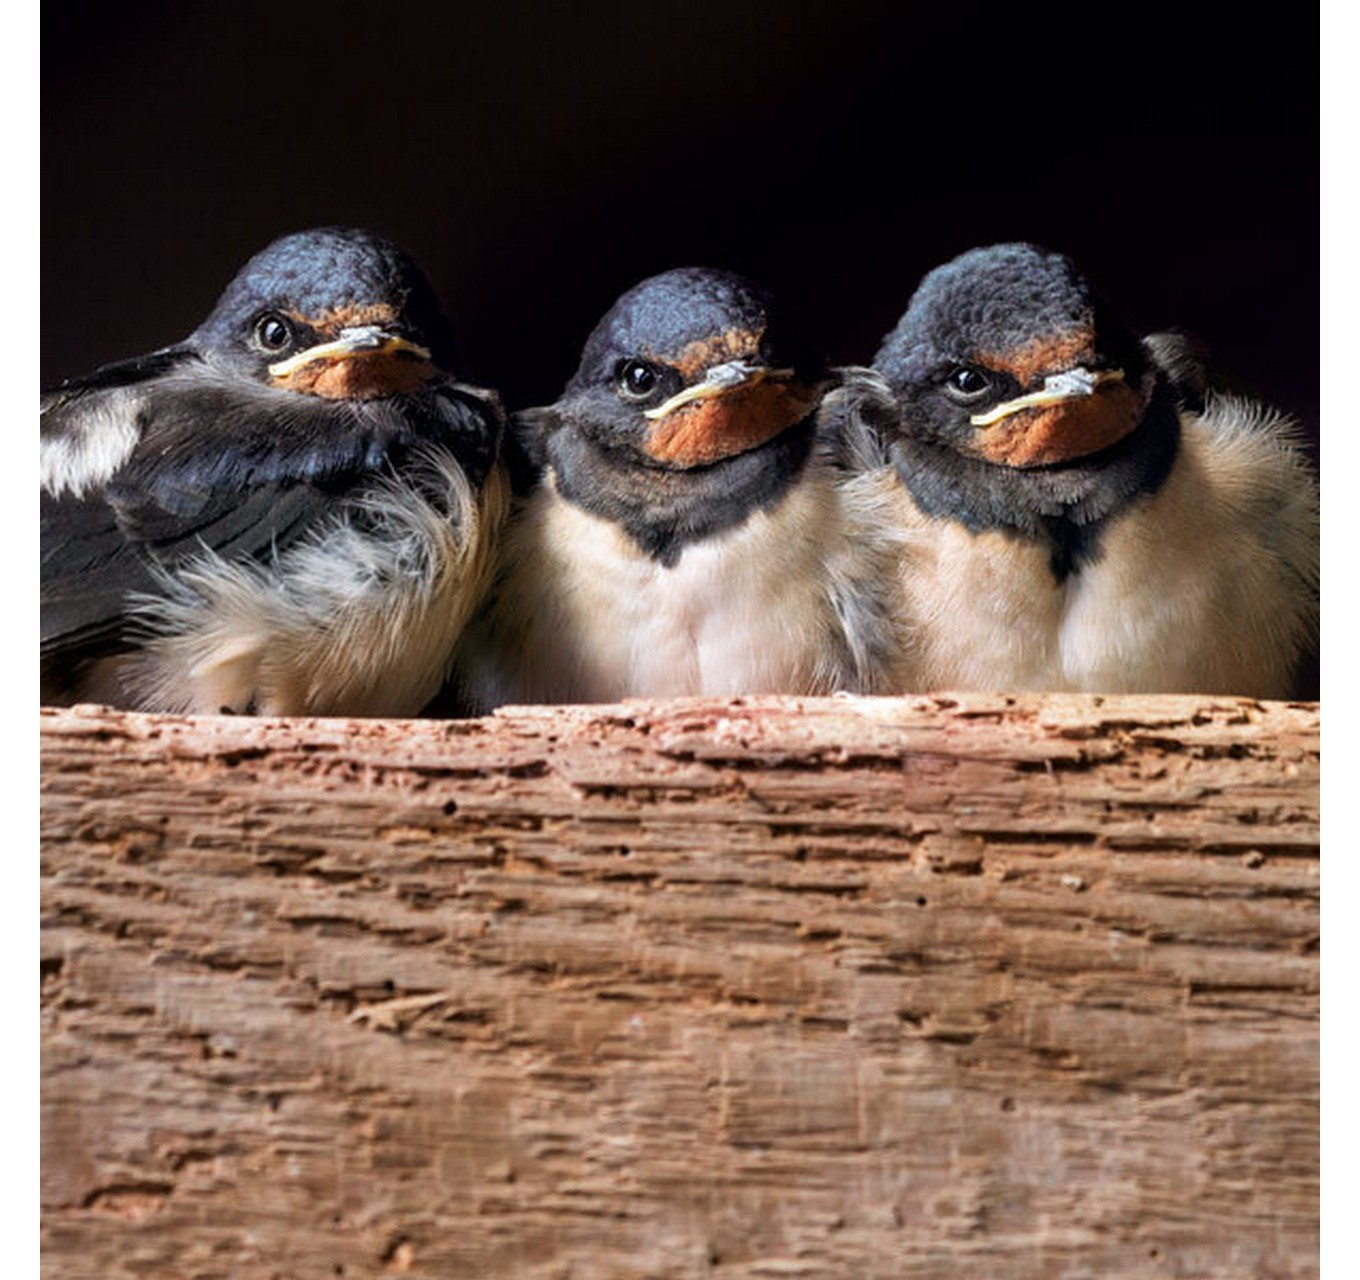 Three Swallow Chicks - Card